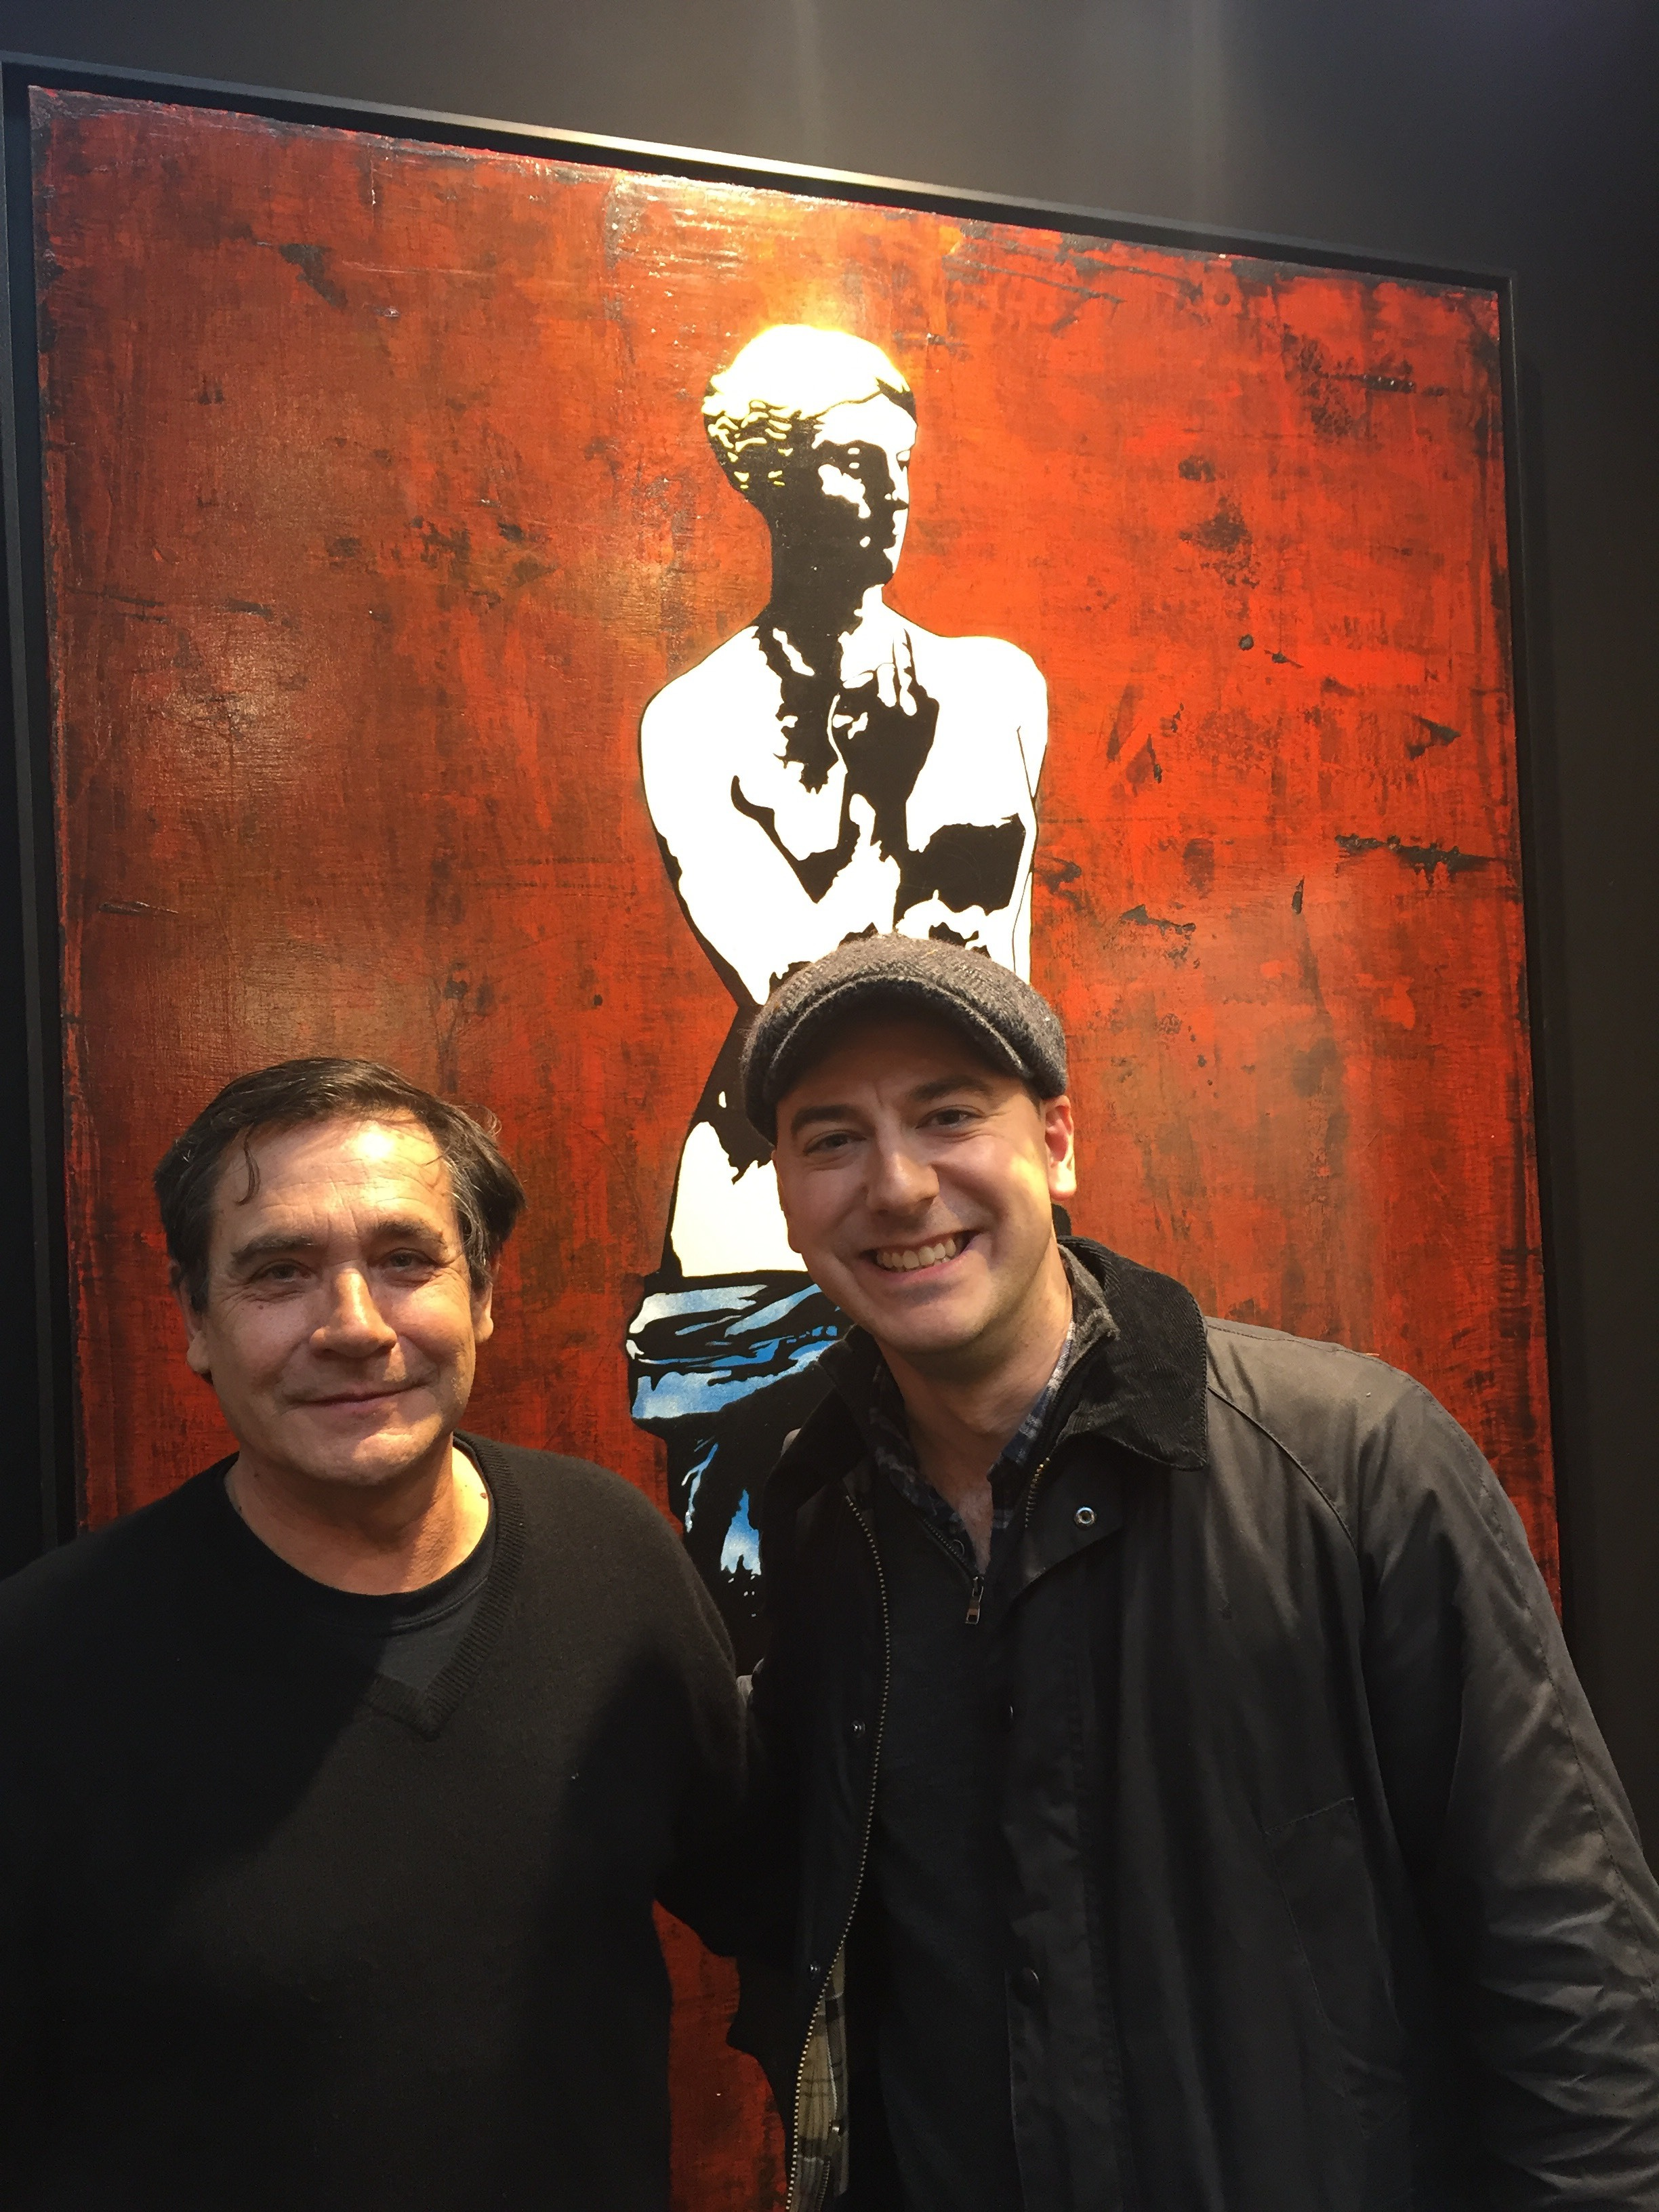 Catching up with Blek le Rat at the Urban Art Fair in Paris.